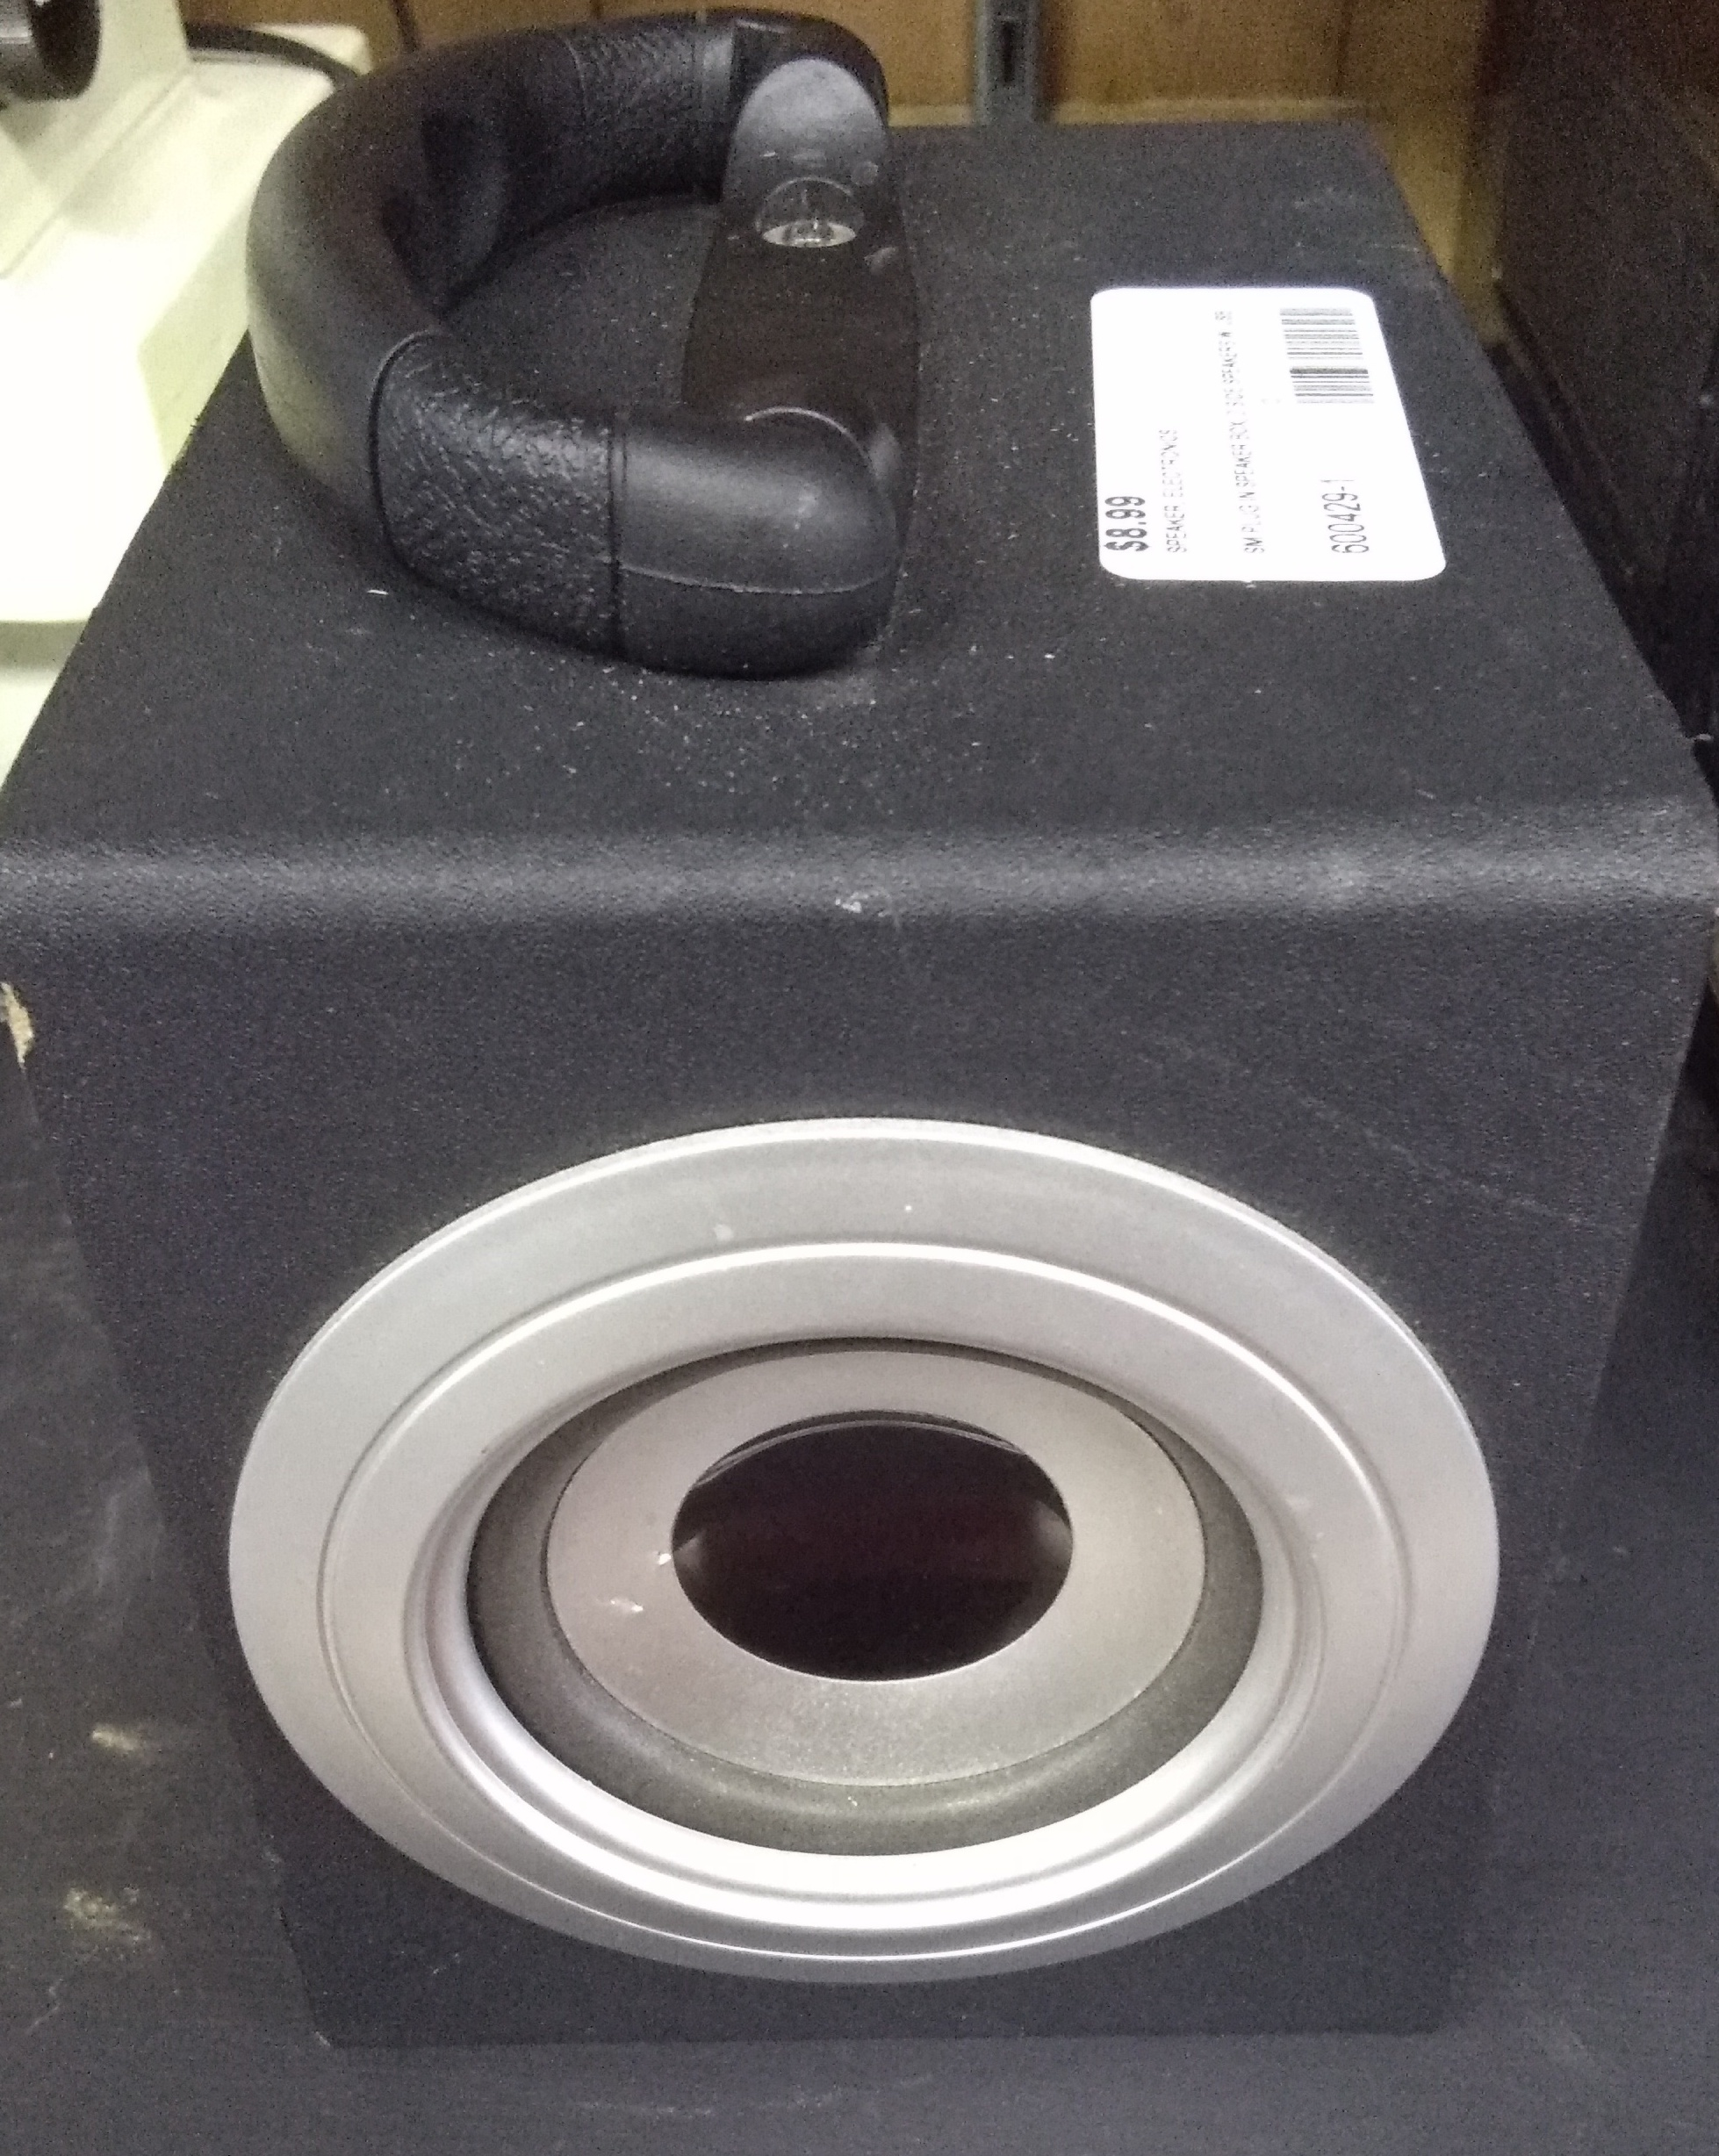 GENERIC SPEAKER W/ USB CHARGER AND AUDIO CORD